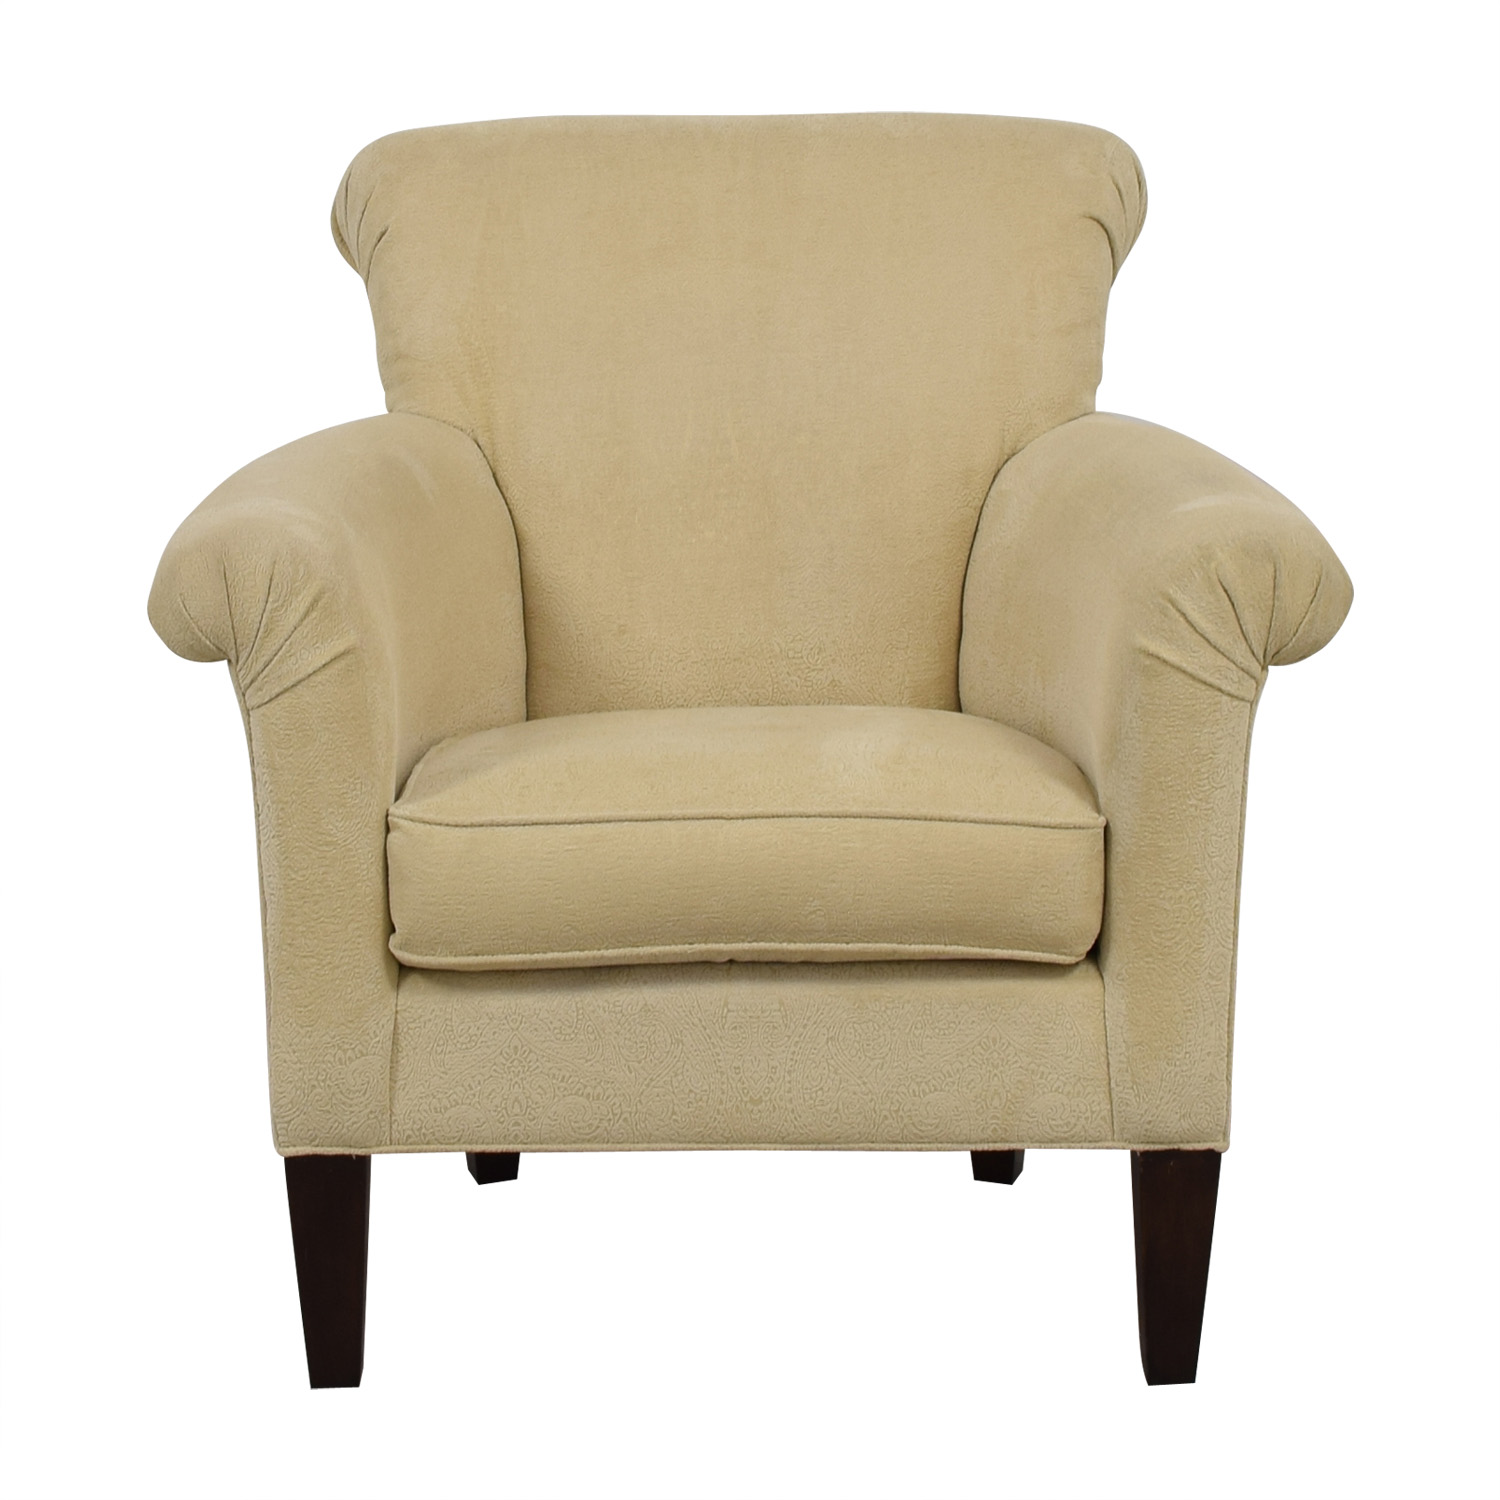 Thomasville Thomasville Cream Lucille Chair price